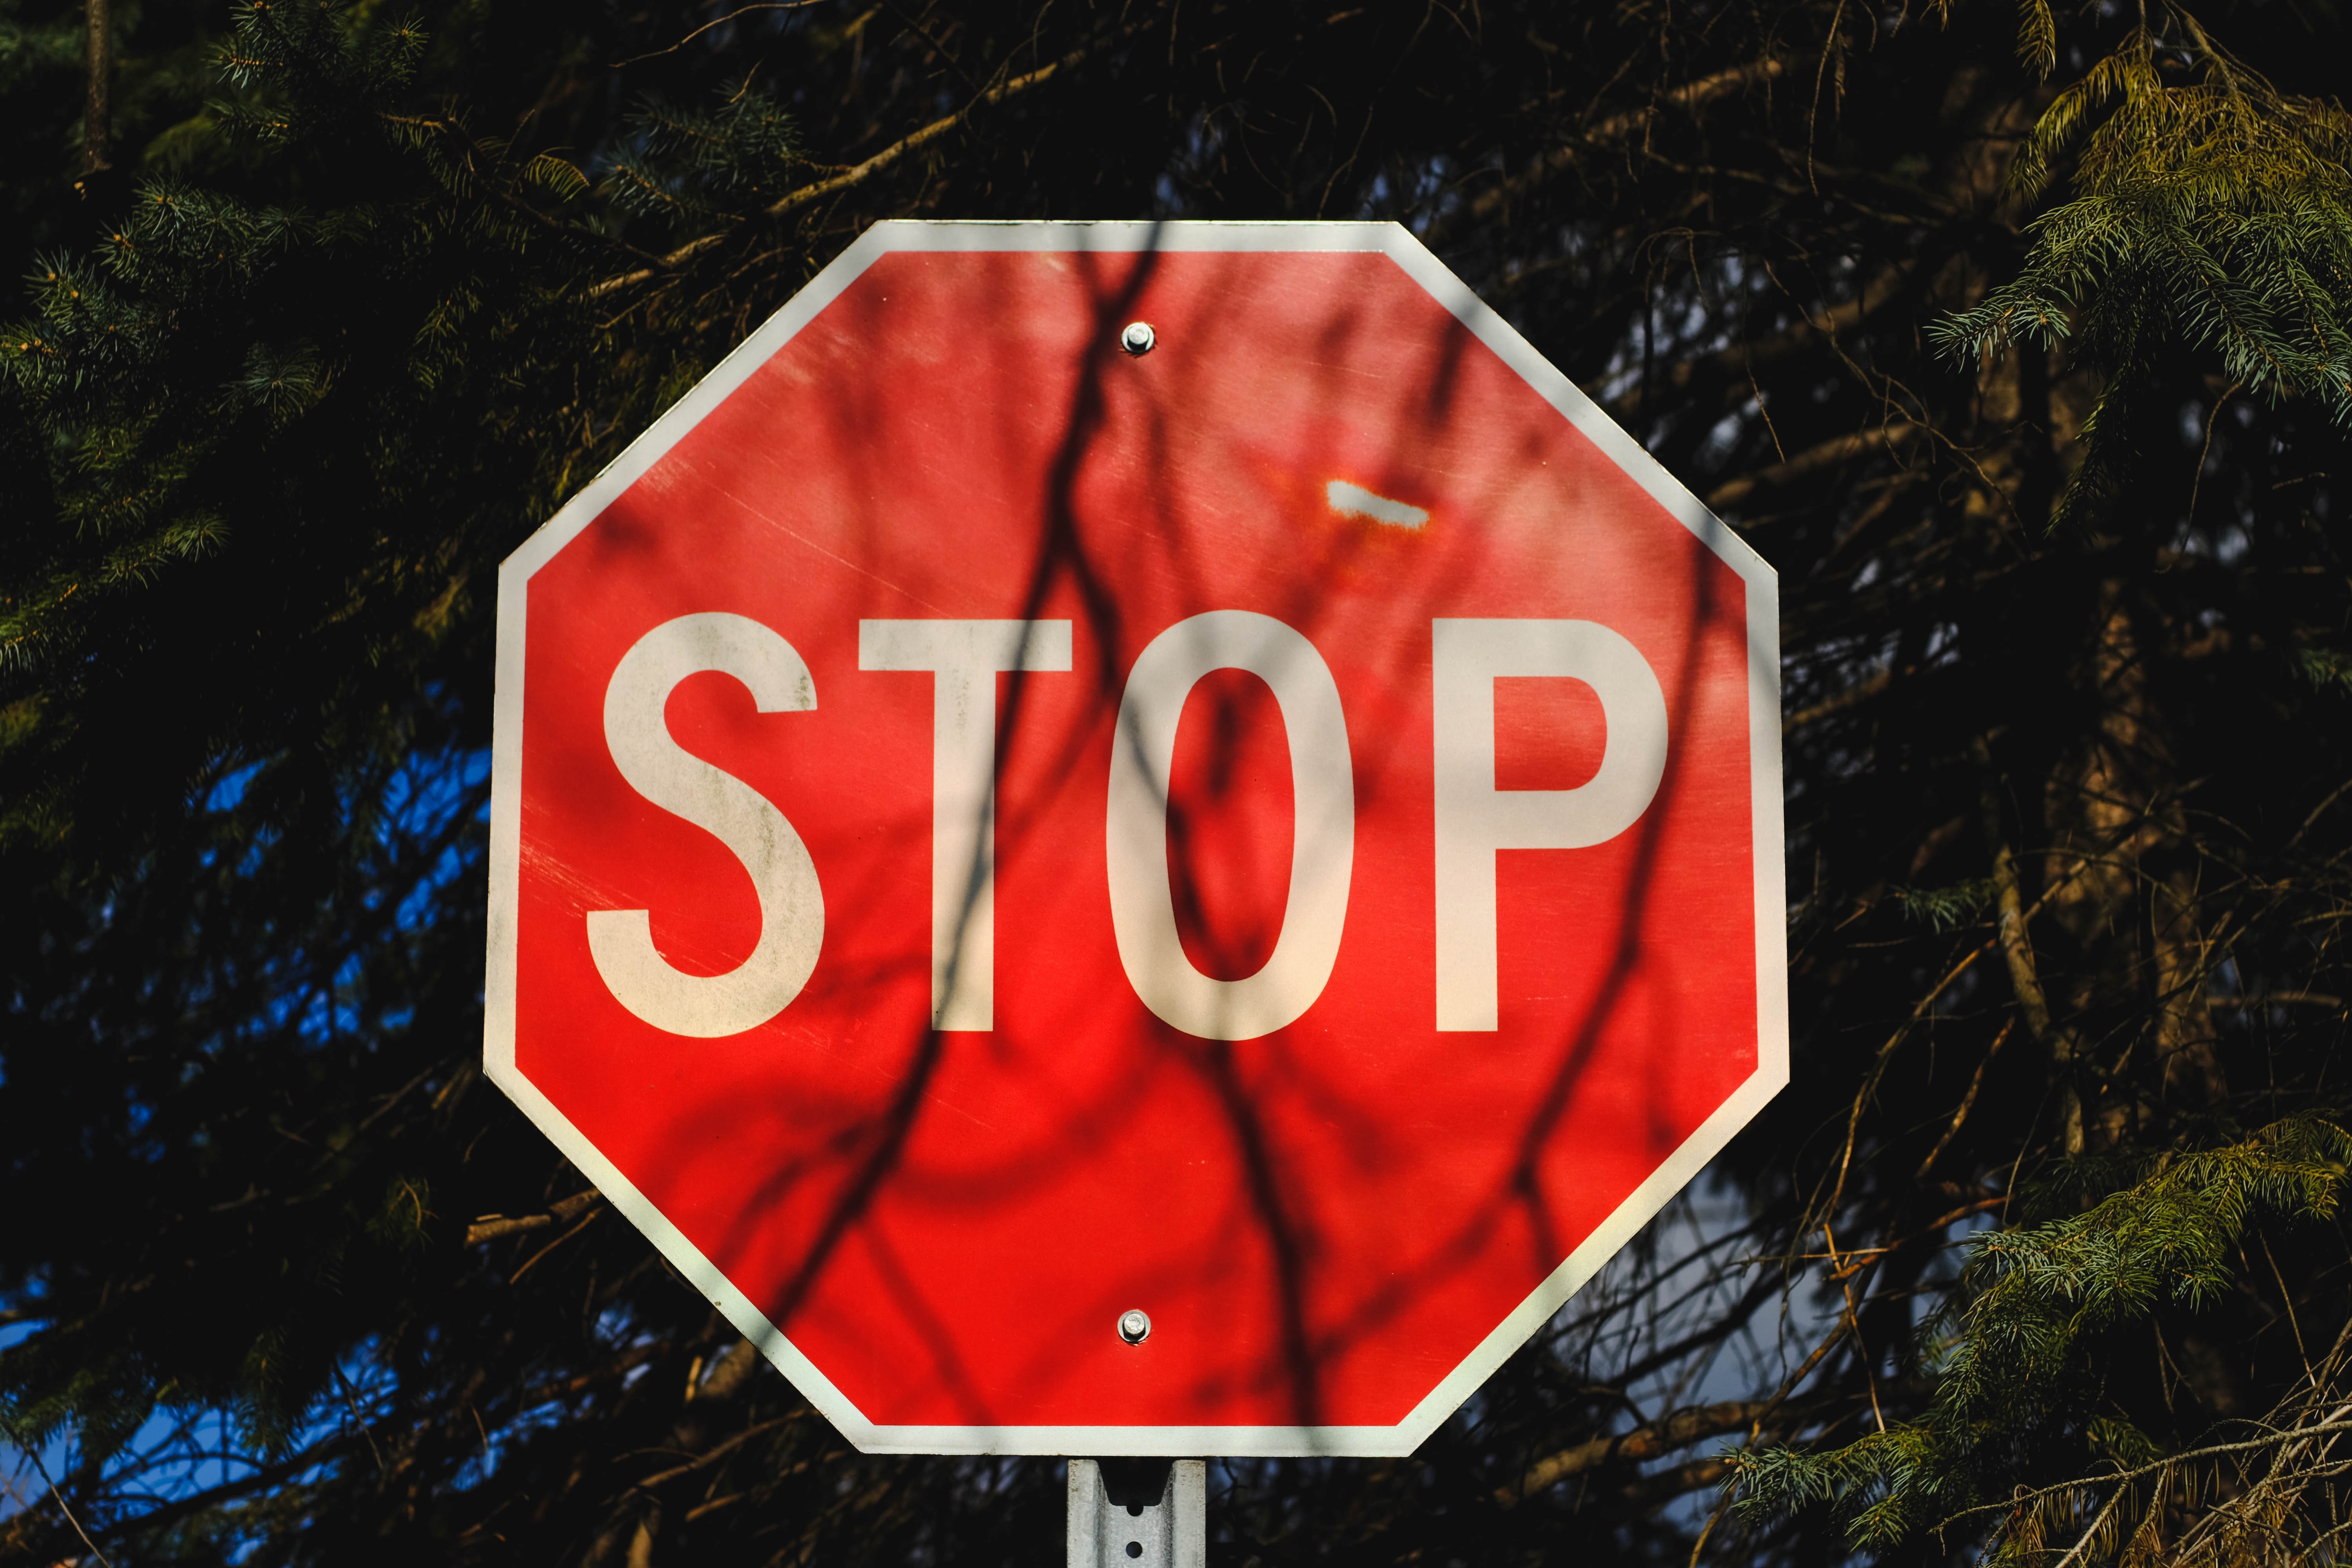 red and white stop road sign